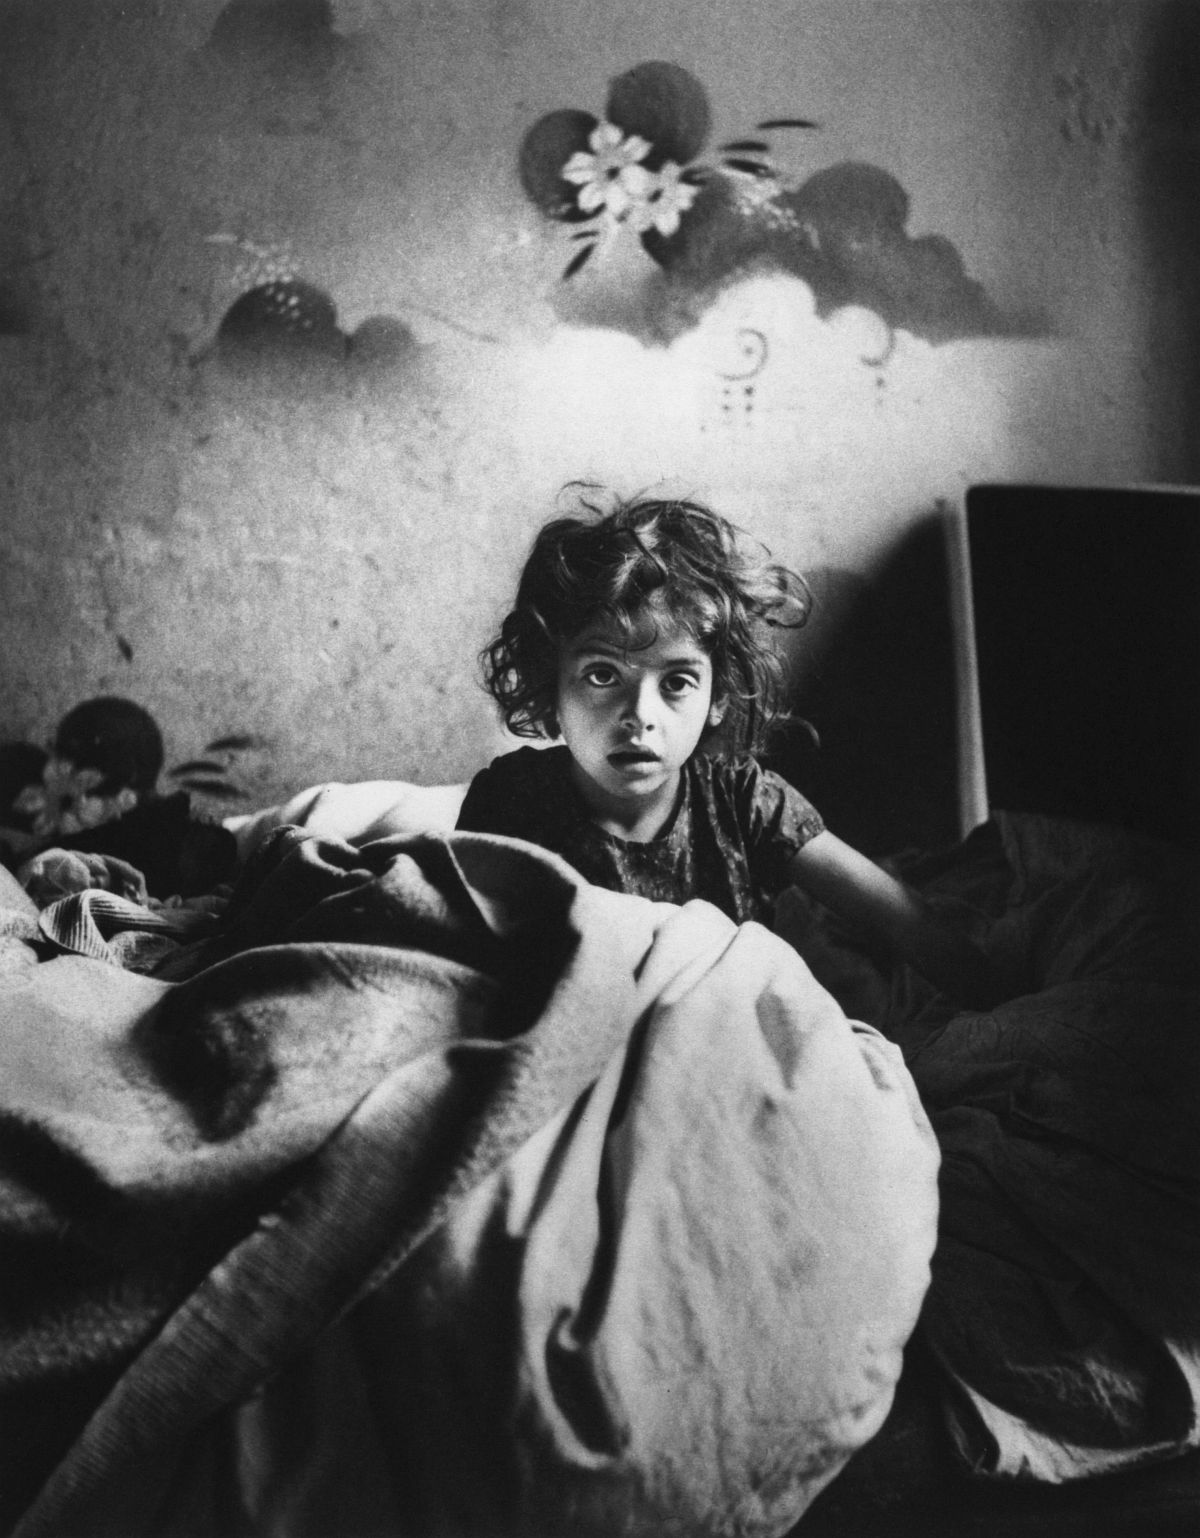 Roman Vishniac, [Sara, sitting in bed in a basement dwelling, with stenciled flowers above her head, Warsaw], cs. 1935–37. Platinum print. © Mara Vishniac Kohn, courtesy International Center of Photography.